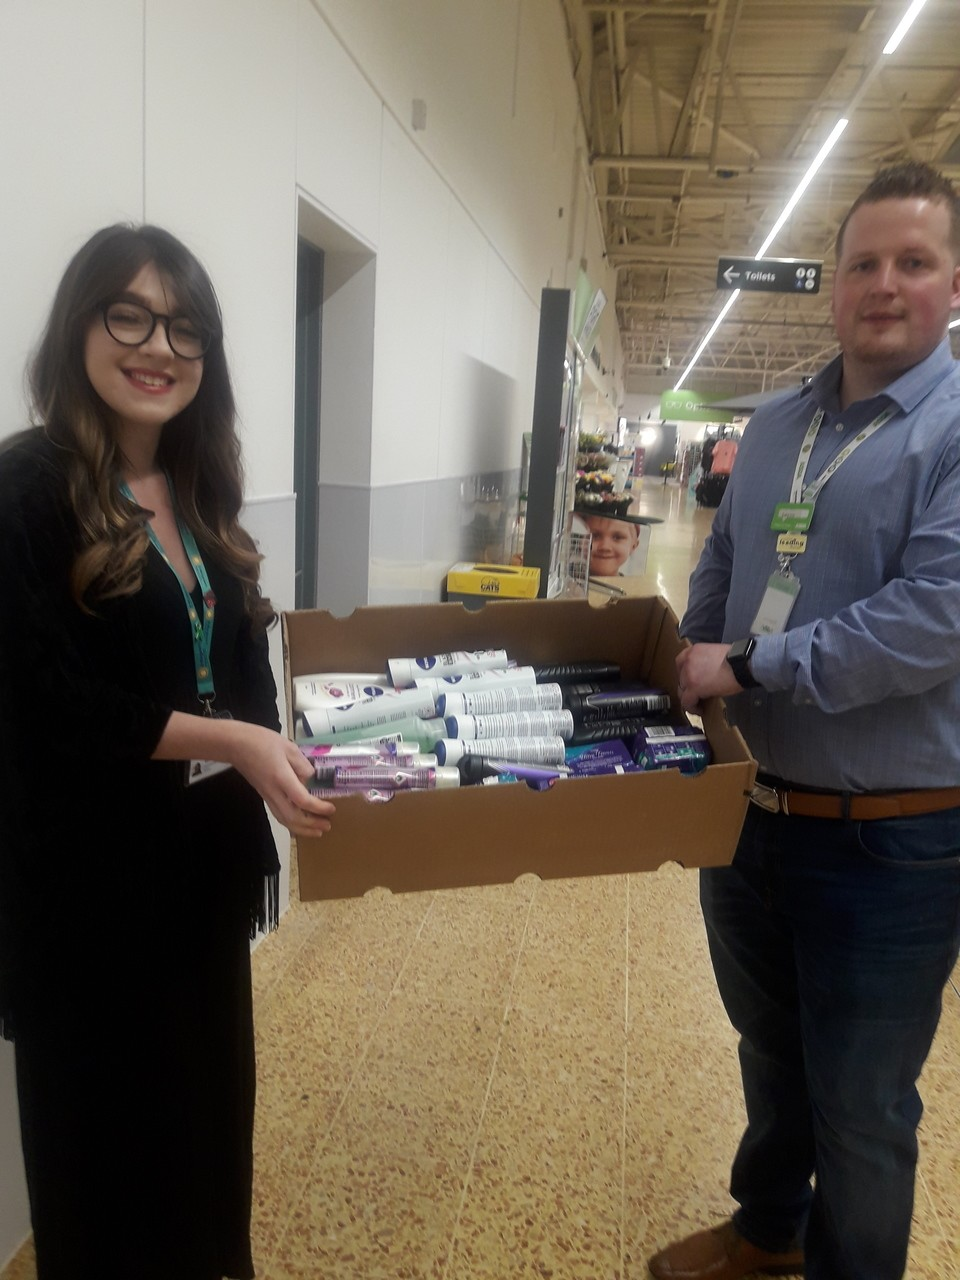 Ddonating toiletries yesterday to our local hospice St Margaret's.Thank you Asda foundation for the extra budget. | Asda Taunton